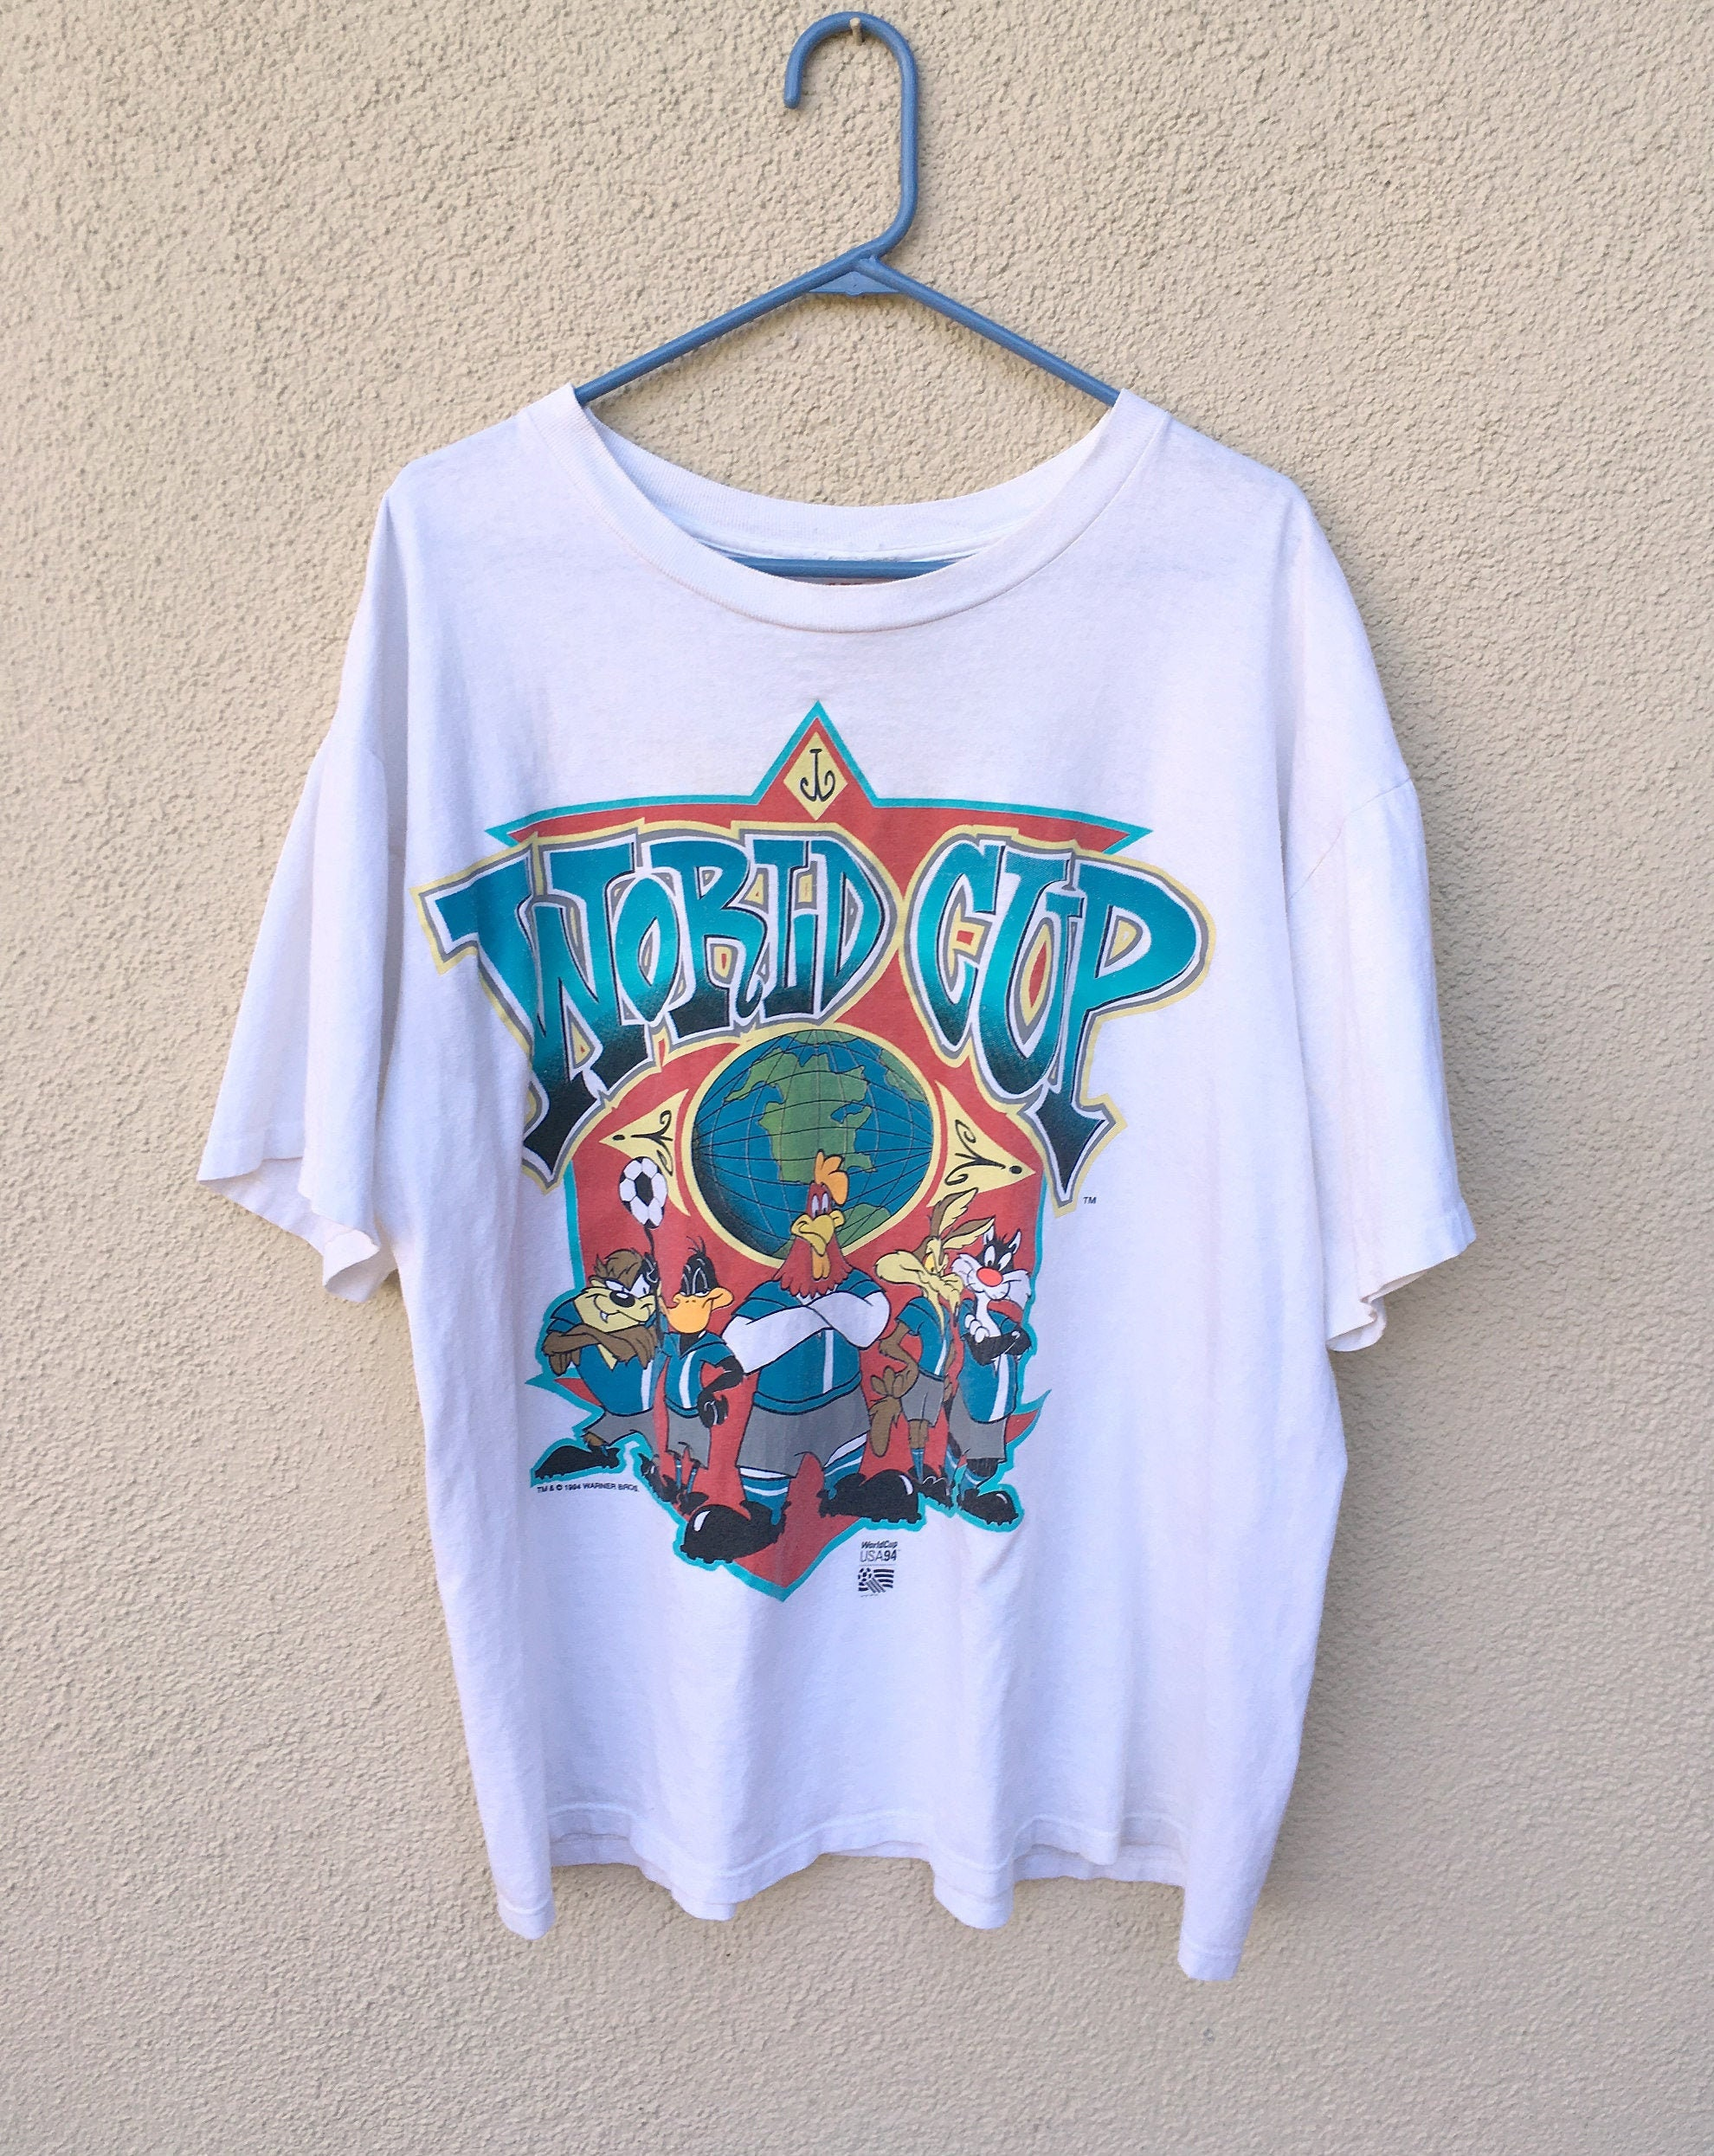 Vintage World Cup Looney Tunes T Shirt 1994 World Cup Soccer Tee In Large Or Xl 1990s Unisex Clothing Wit Bugs Bunny And Taz Unisex Tshirt